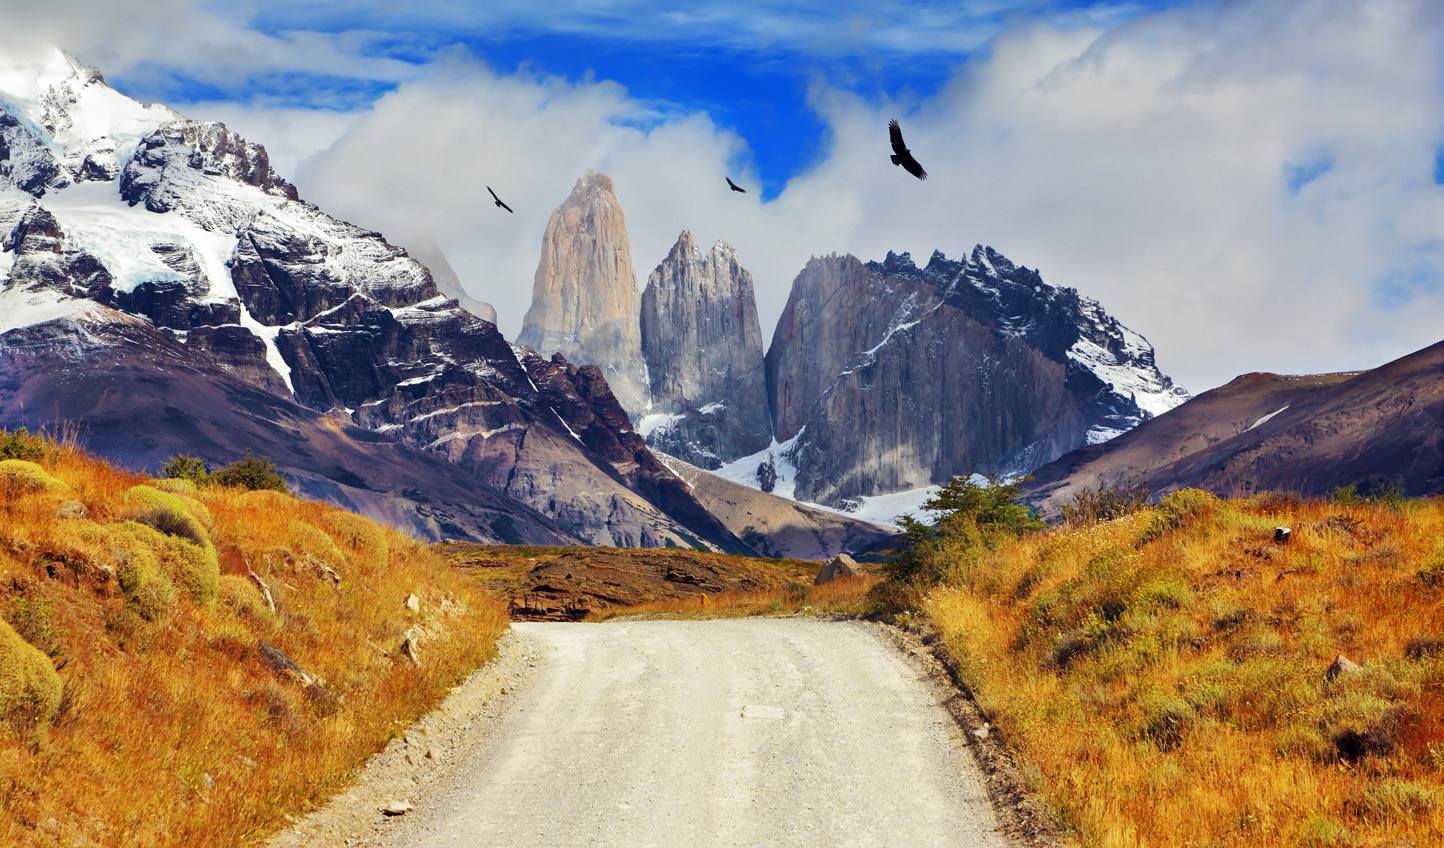 Cross the border from Argentinian to Chilean Patagonia